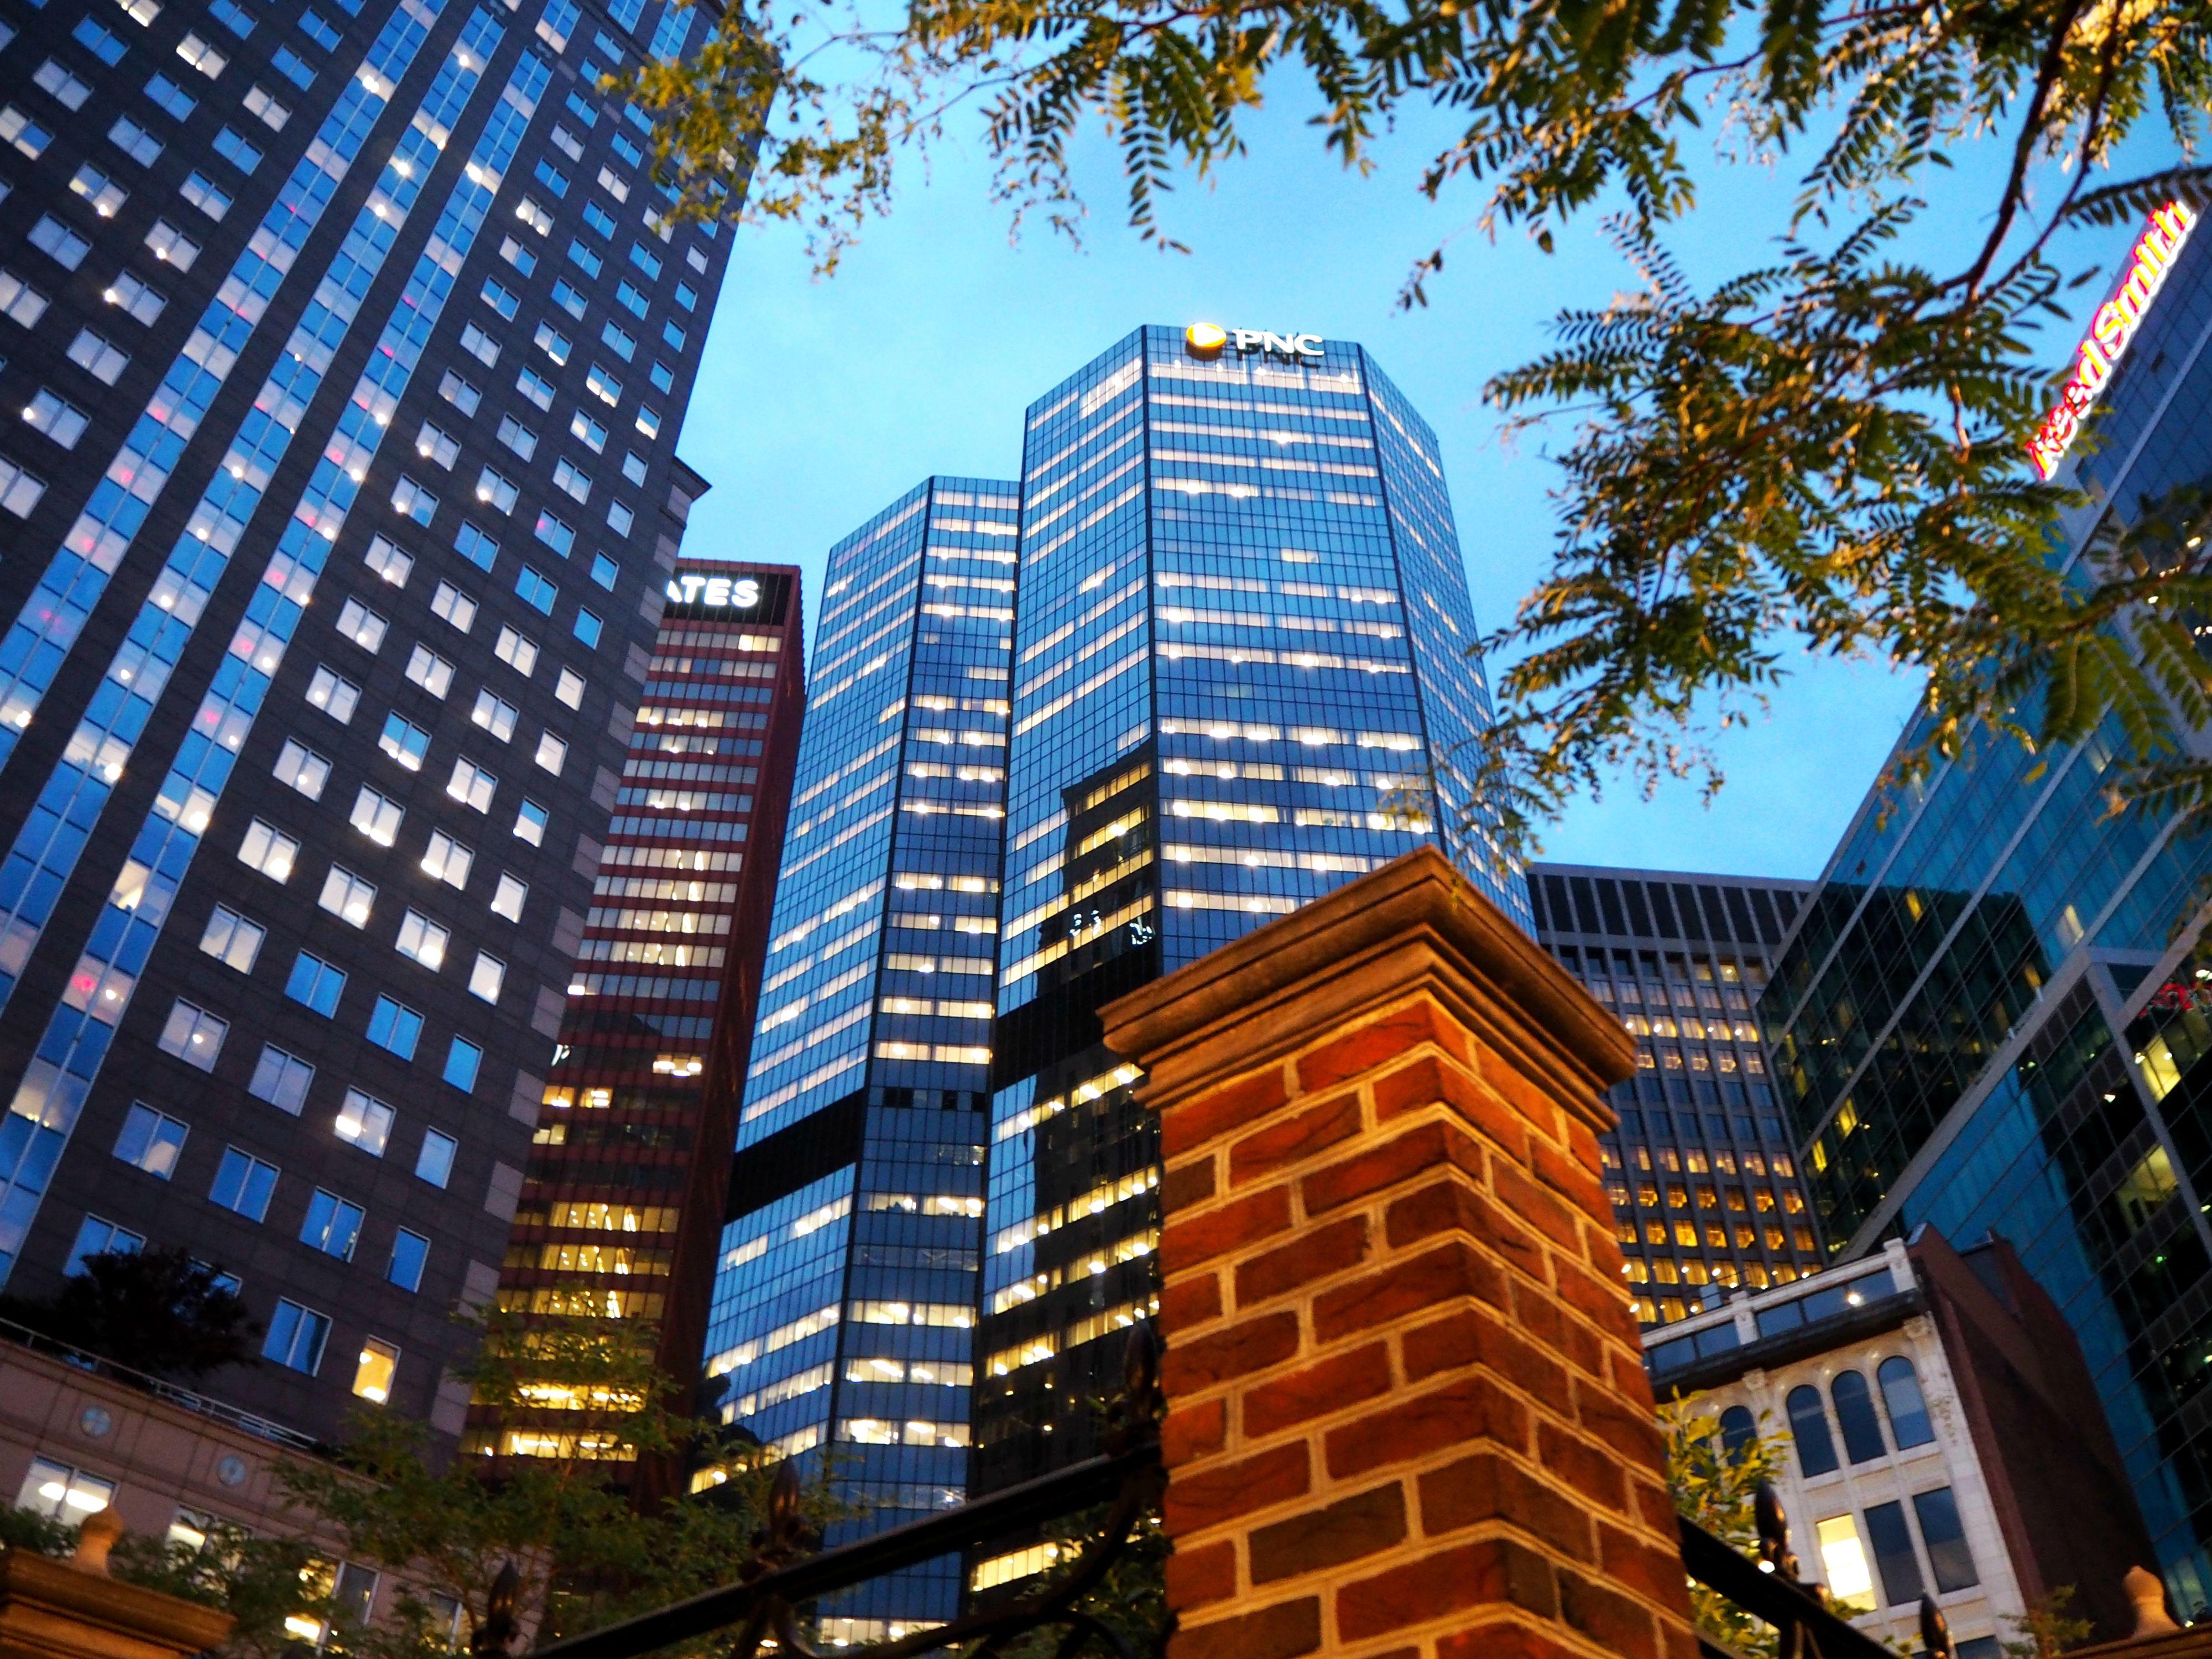 A famous feature of the Pittsburgh skyline is the PNC building